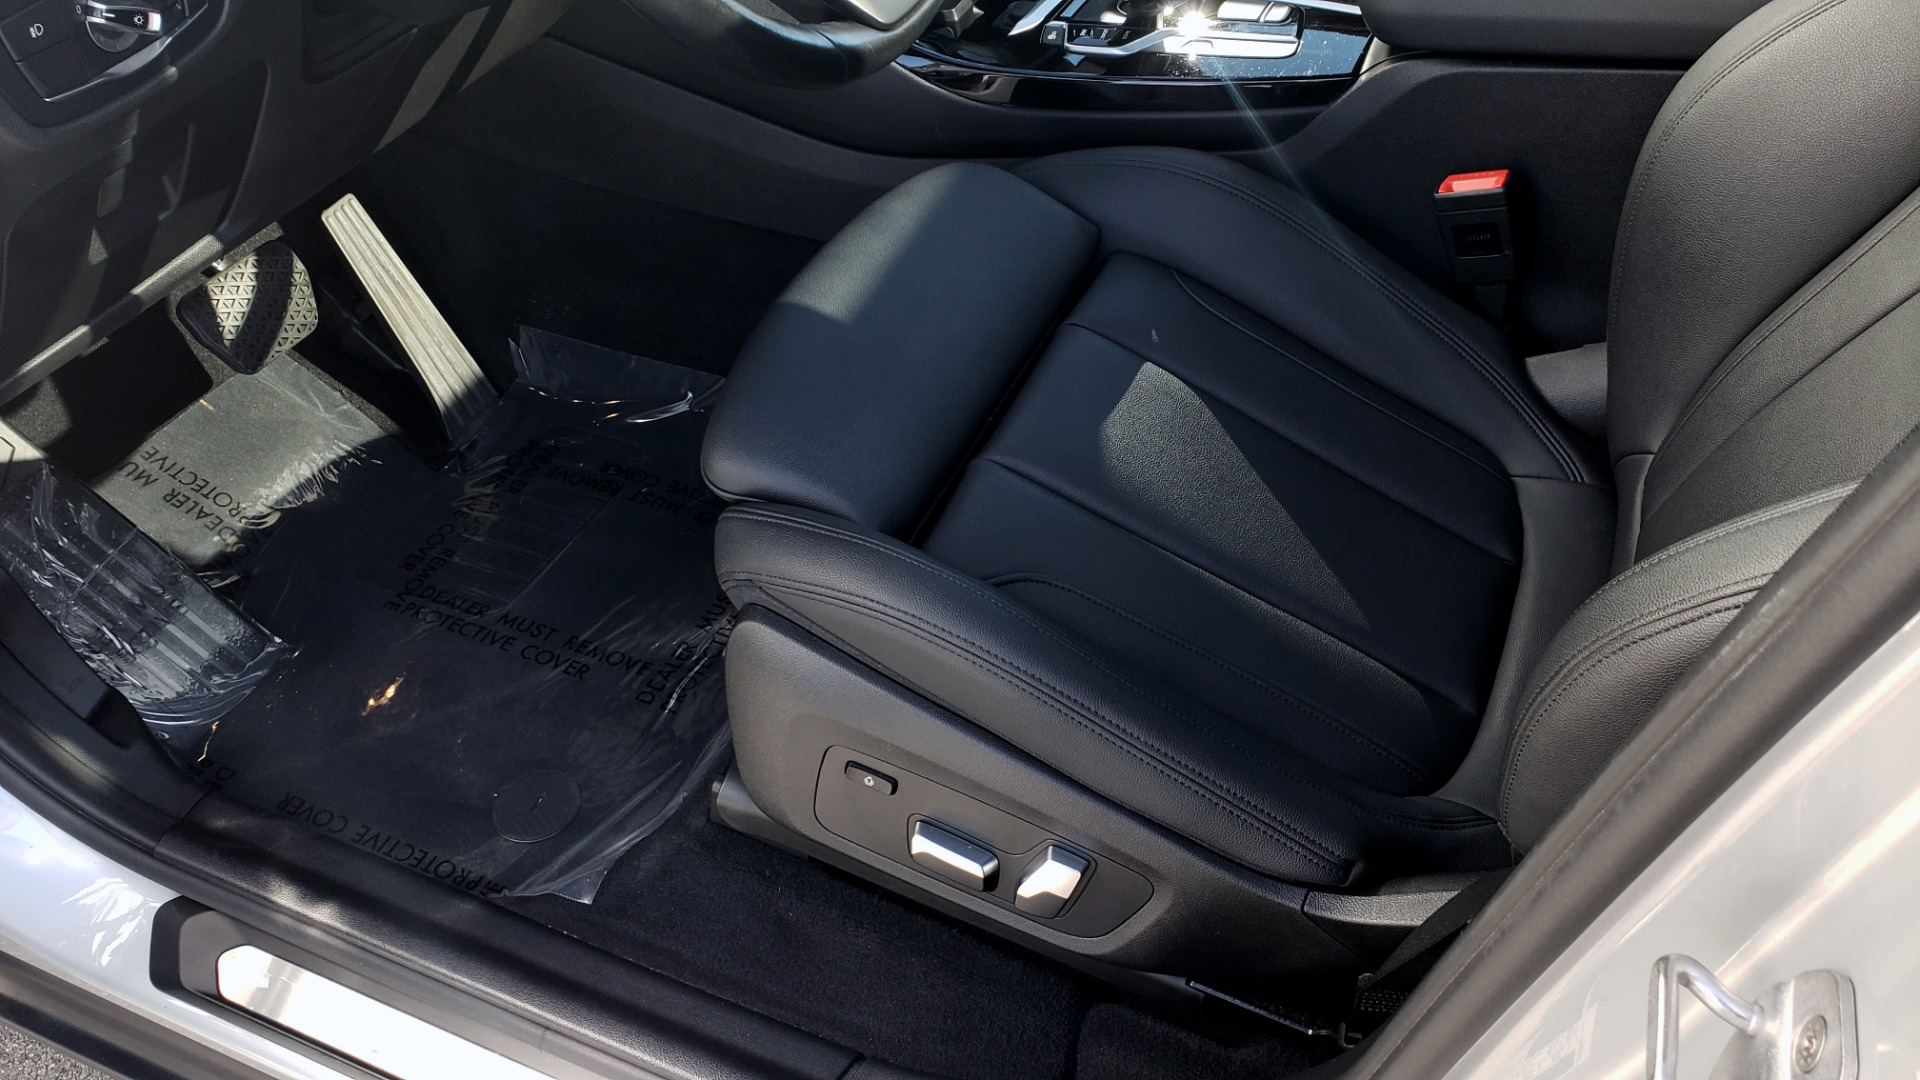 Used 2019 BMW X3 XDRIVE30I / DRVR ASST / PANO-ROOF / HTD STS / REARVIEW for sale $41,995 at Formula Imports in Charlotte NC 28227 37